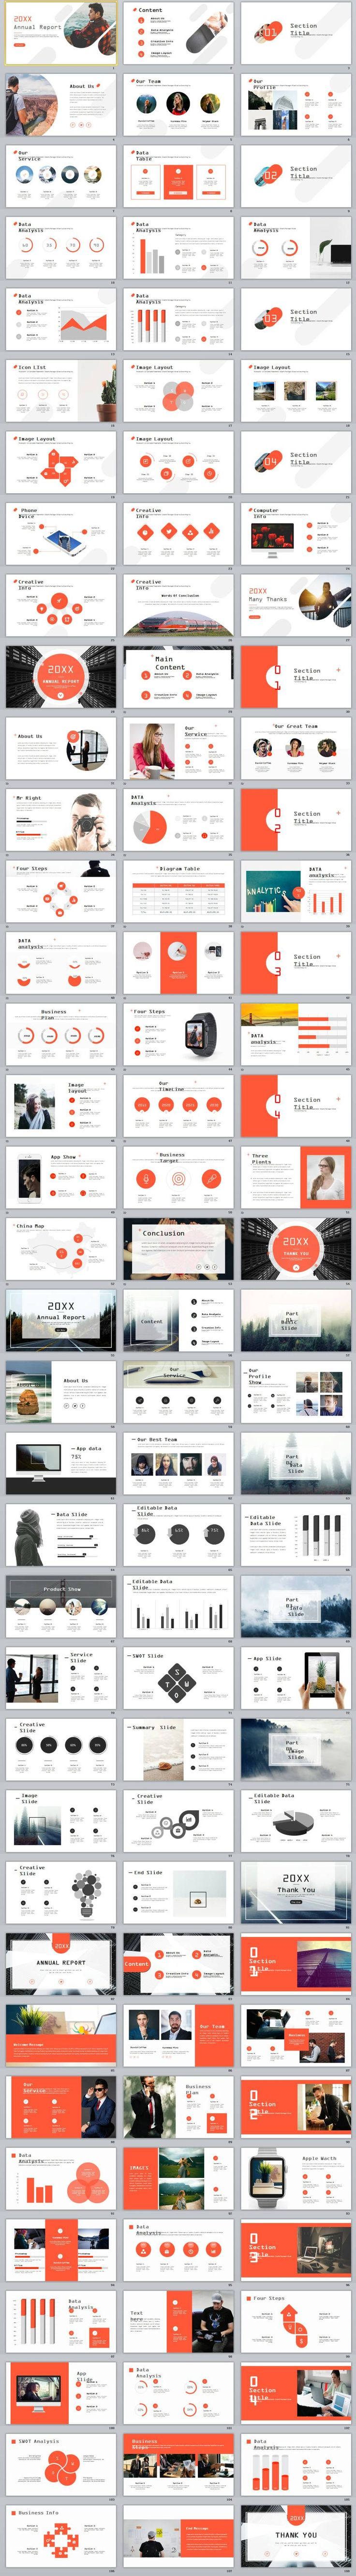 powerpoint templates 2018